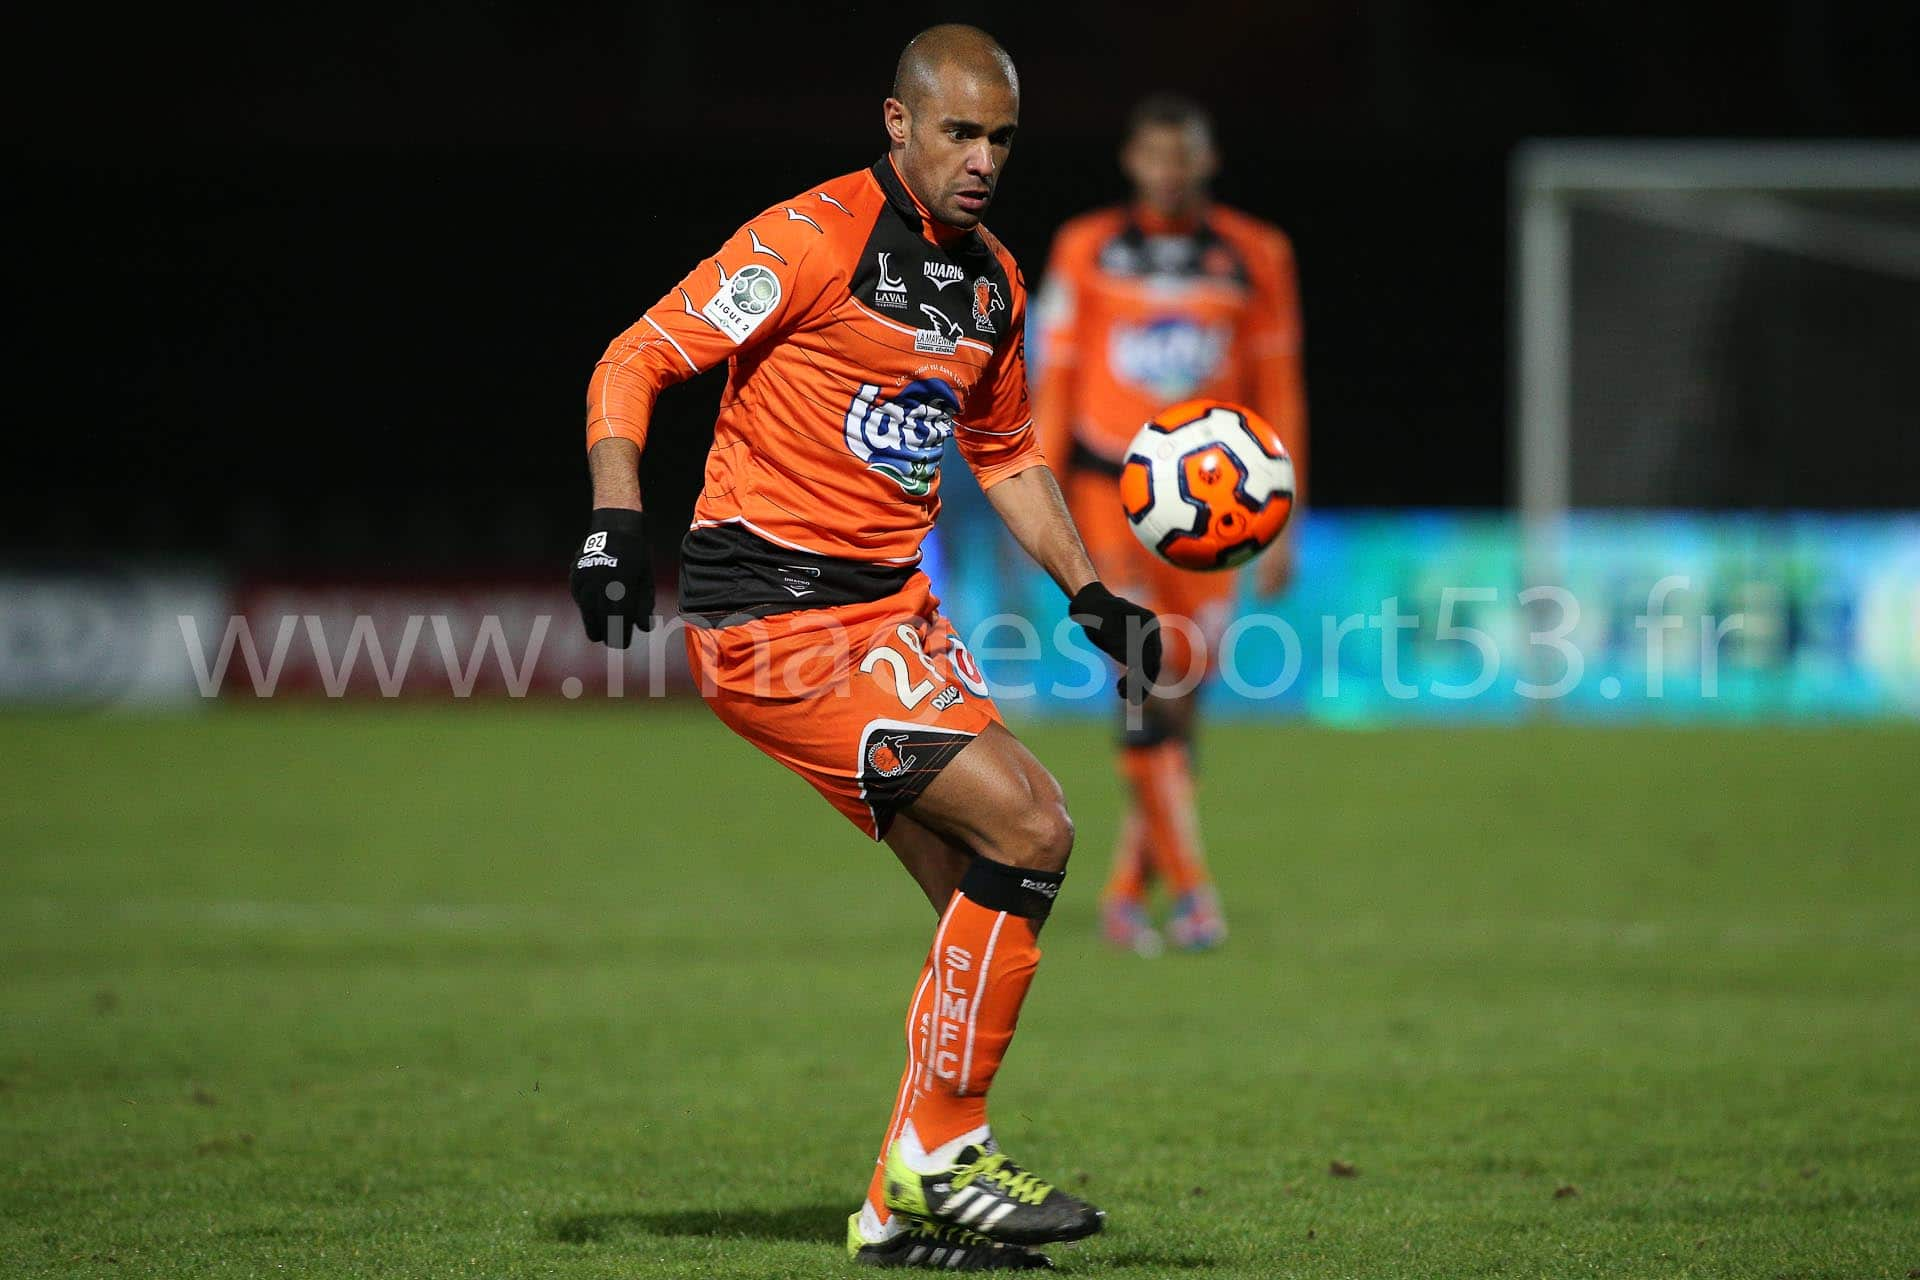 Gary COULIBALY (Stade Lavallois)